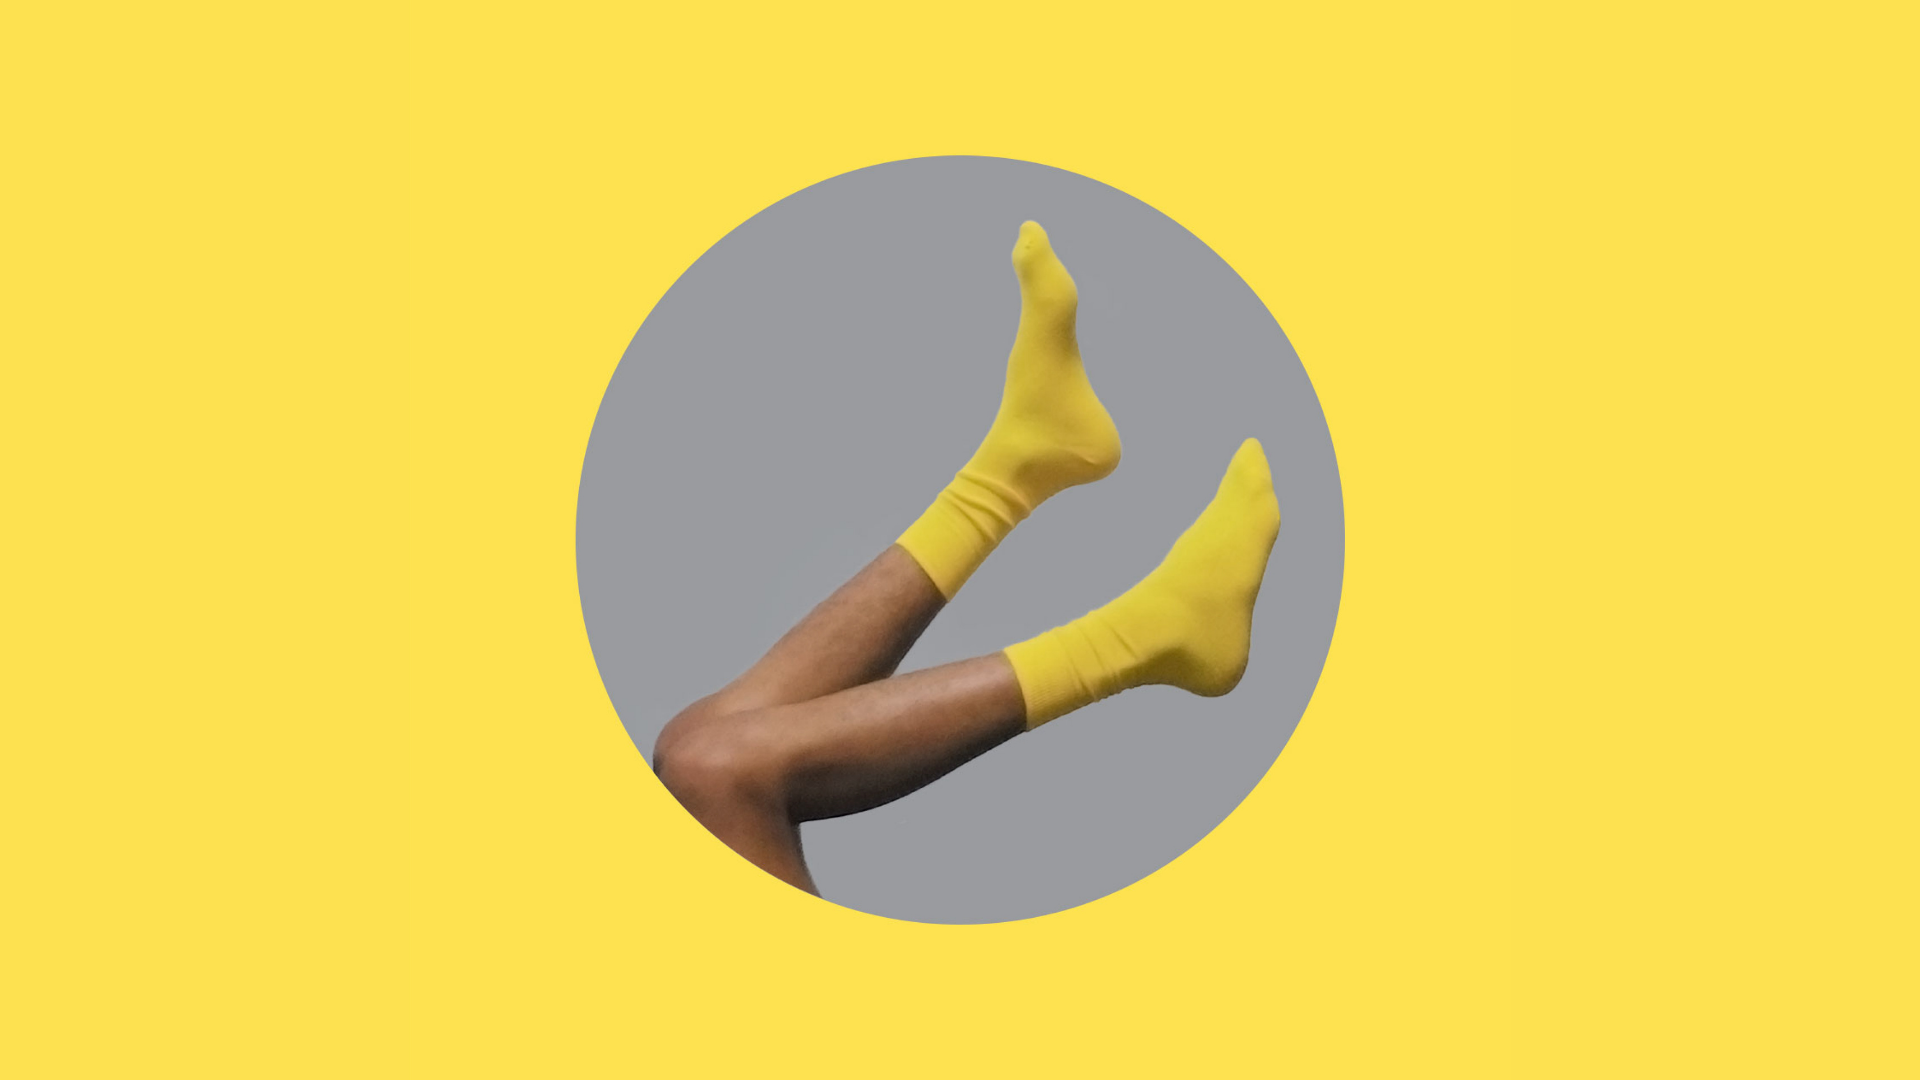 A picture of yellow socks